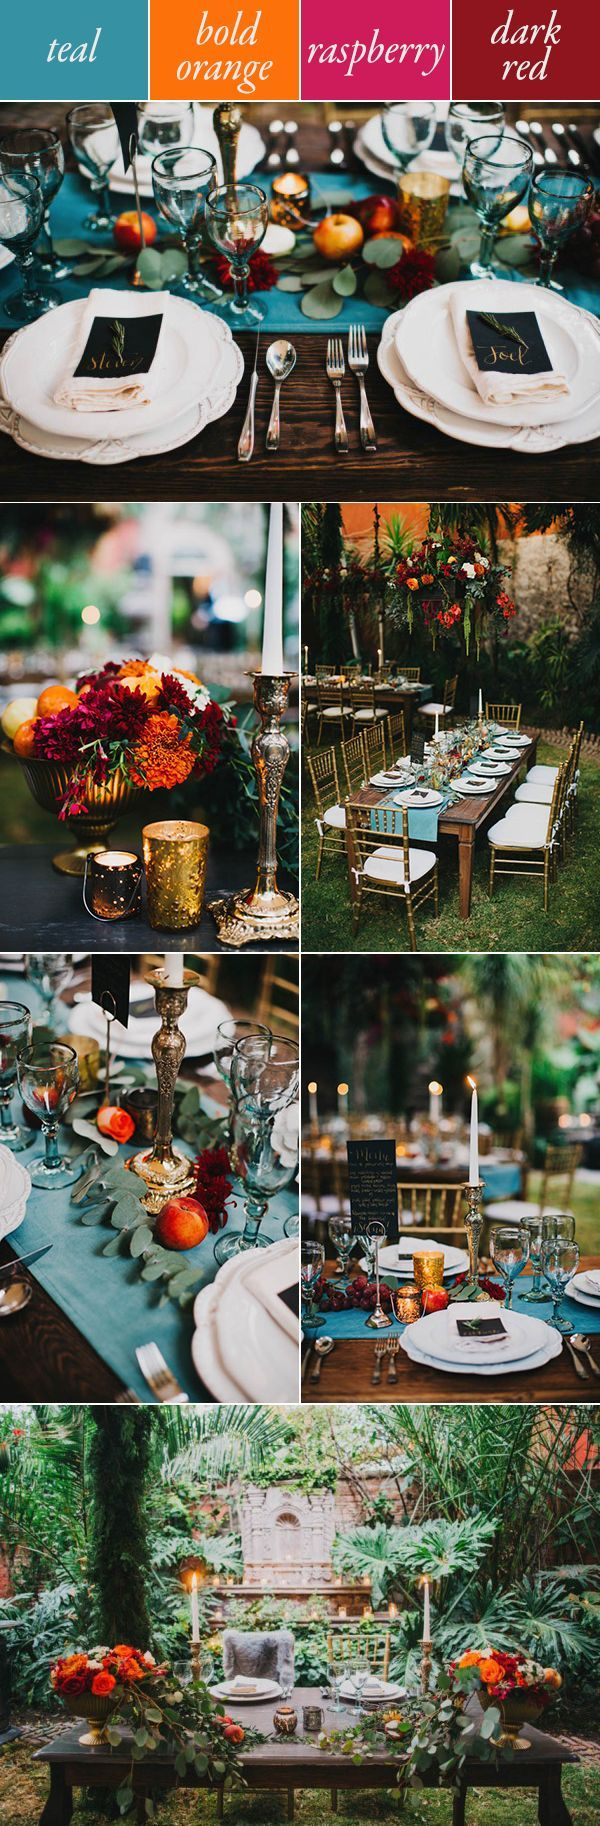 Red color code wolf online - 5 Gorgeous Fall Wedding Color Palettes